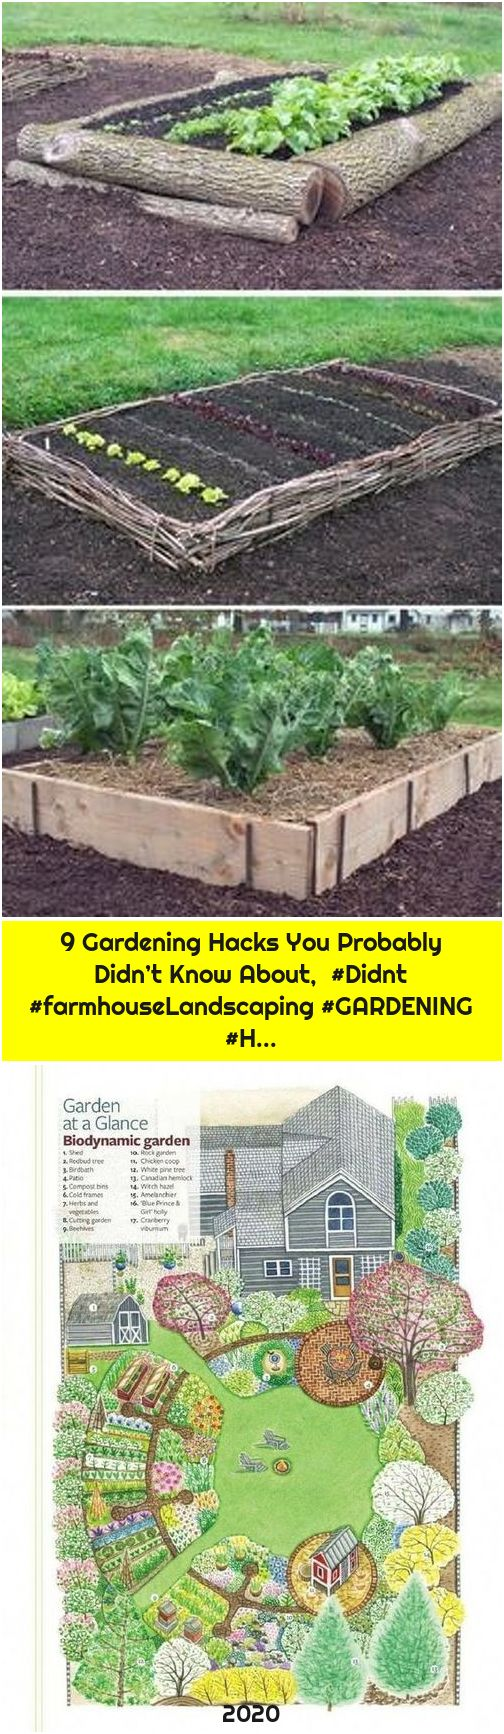 9 Gardening Hacks You Probably Didn't Know About, #Didnt #farmhouseLandscaping #GARDENING #H...